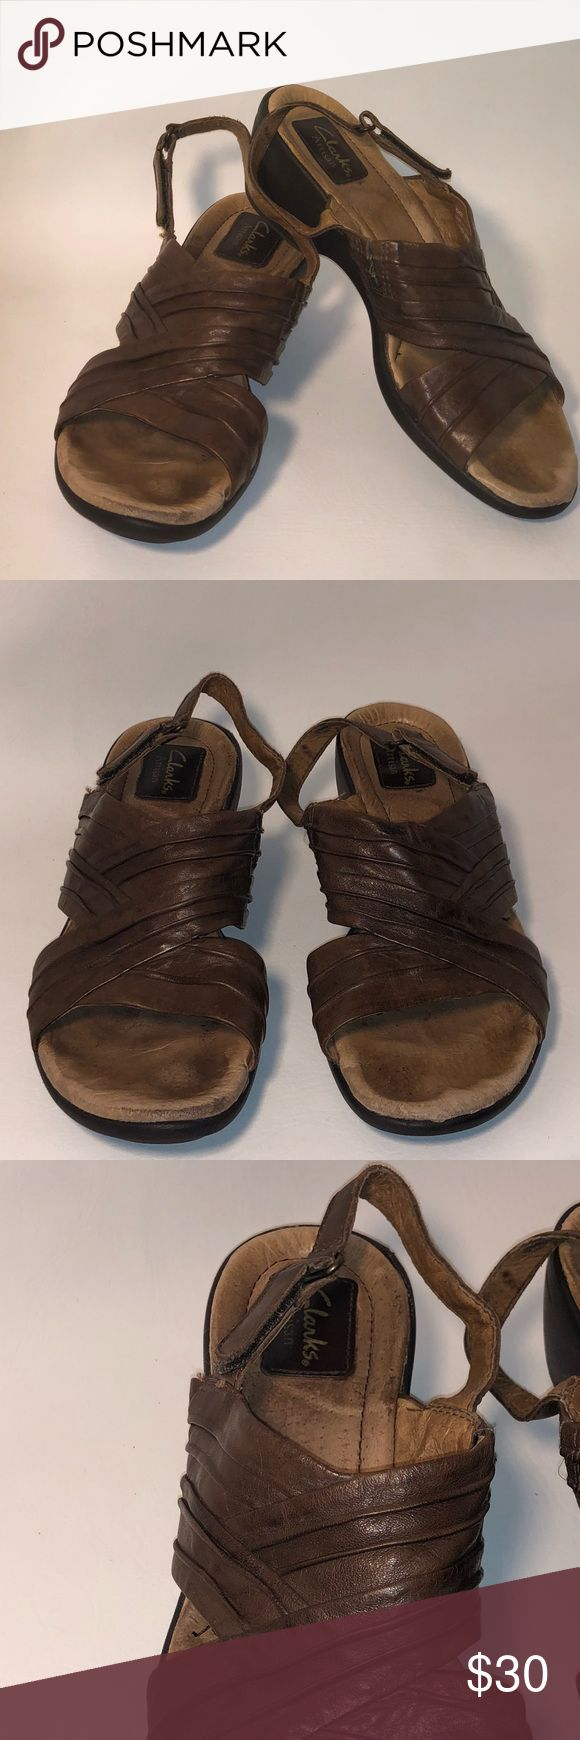 Clark's Artisan Size 9 Brown Sandals ** Clark's Artisan Size 9 Brown Sandals** -GUC -size 11 -color: Brown -back Velcro tie for the perfect fit -super comfortable  -all day walking sole -comes from a pet and smoke free home 💗NO TRADES💗 Clarks Shoes Sandals